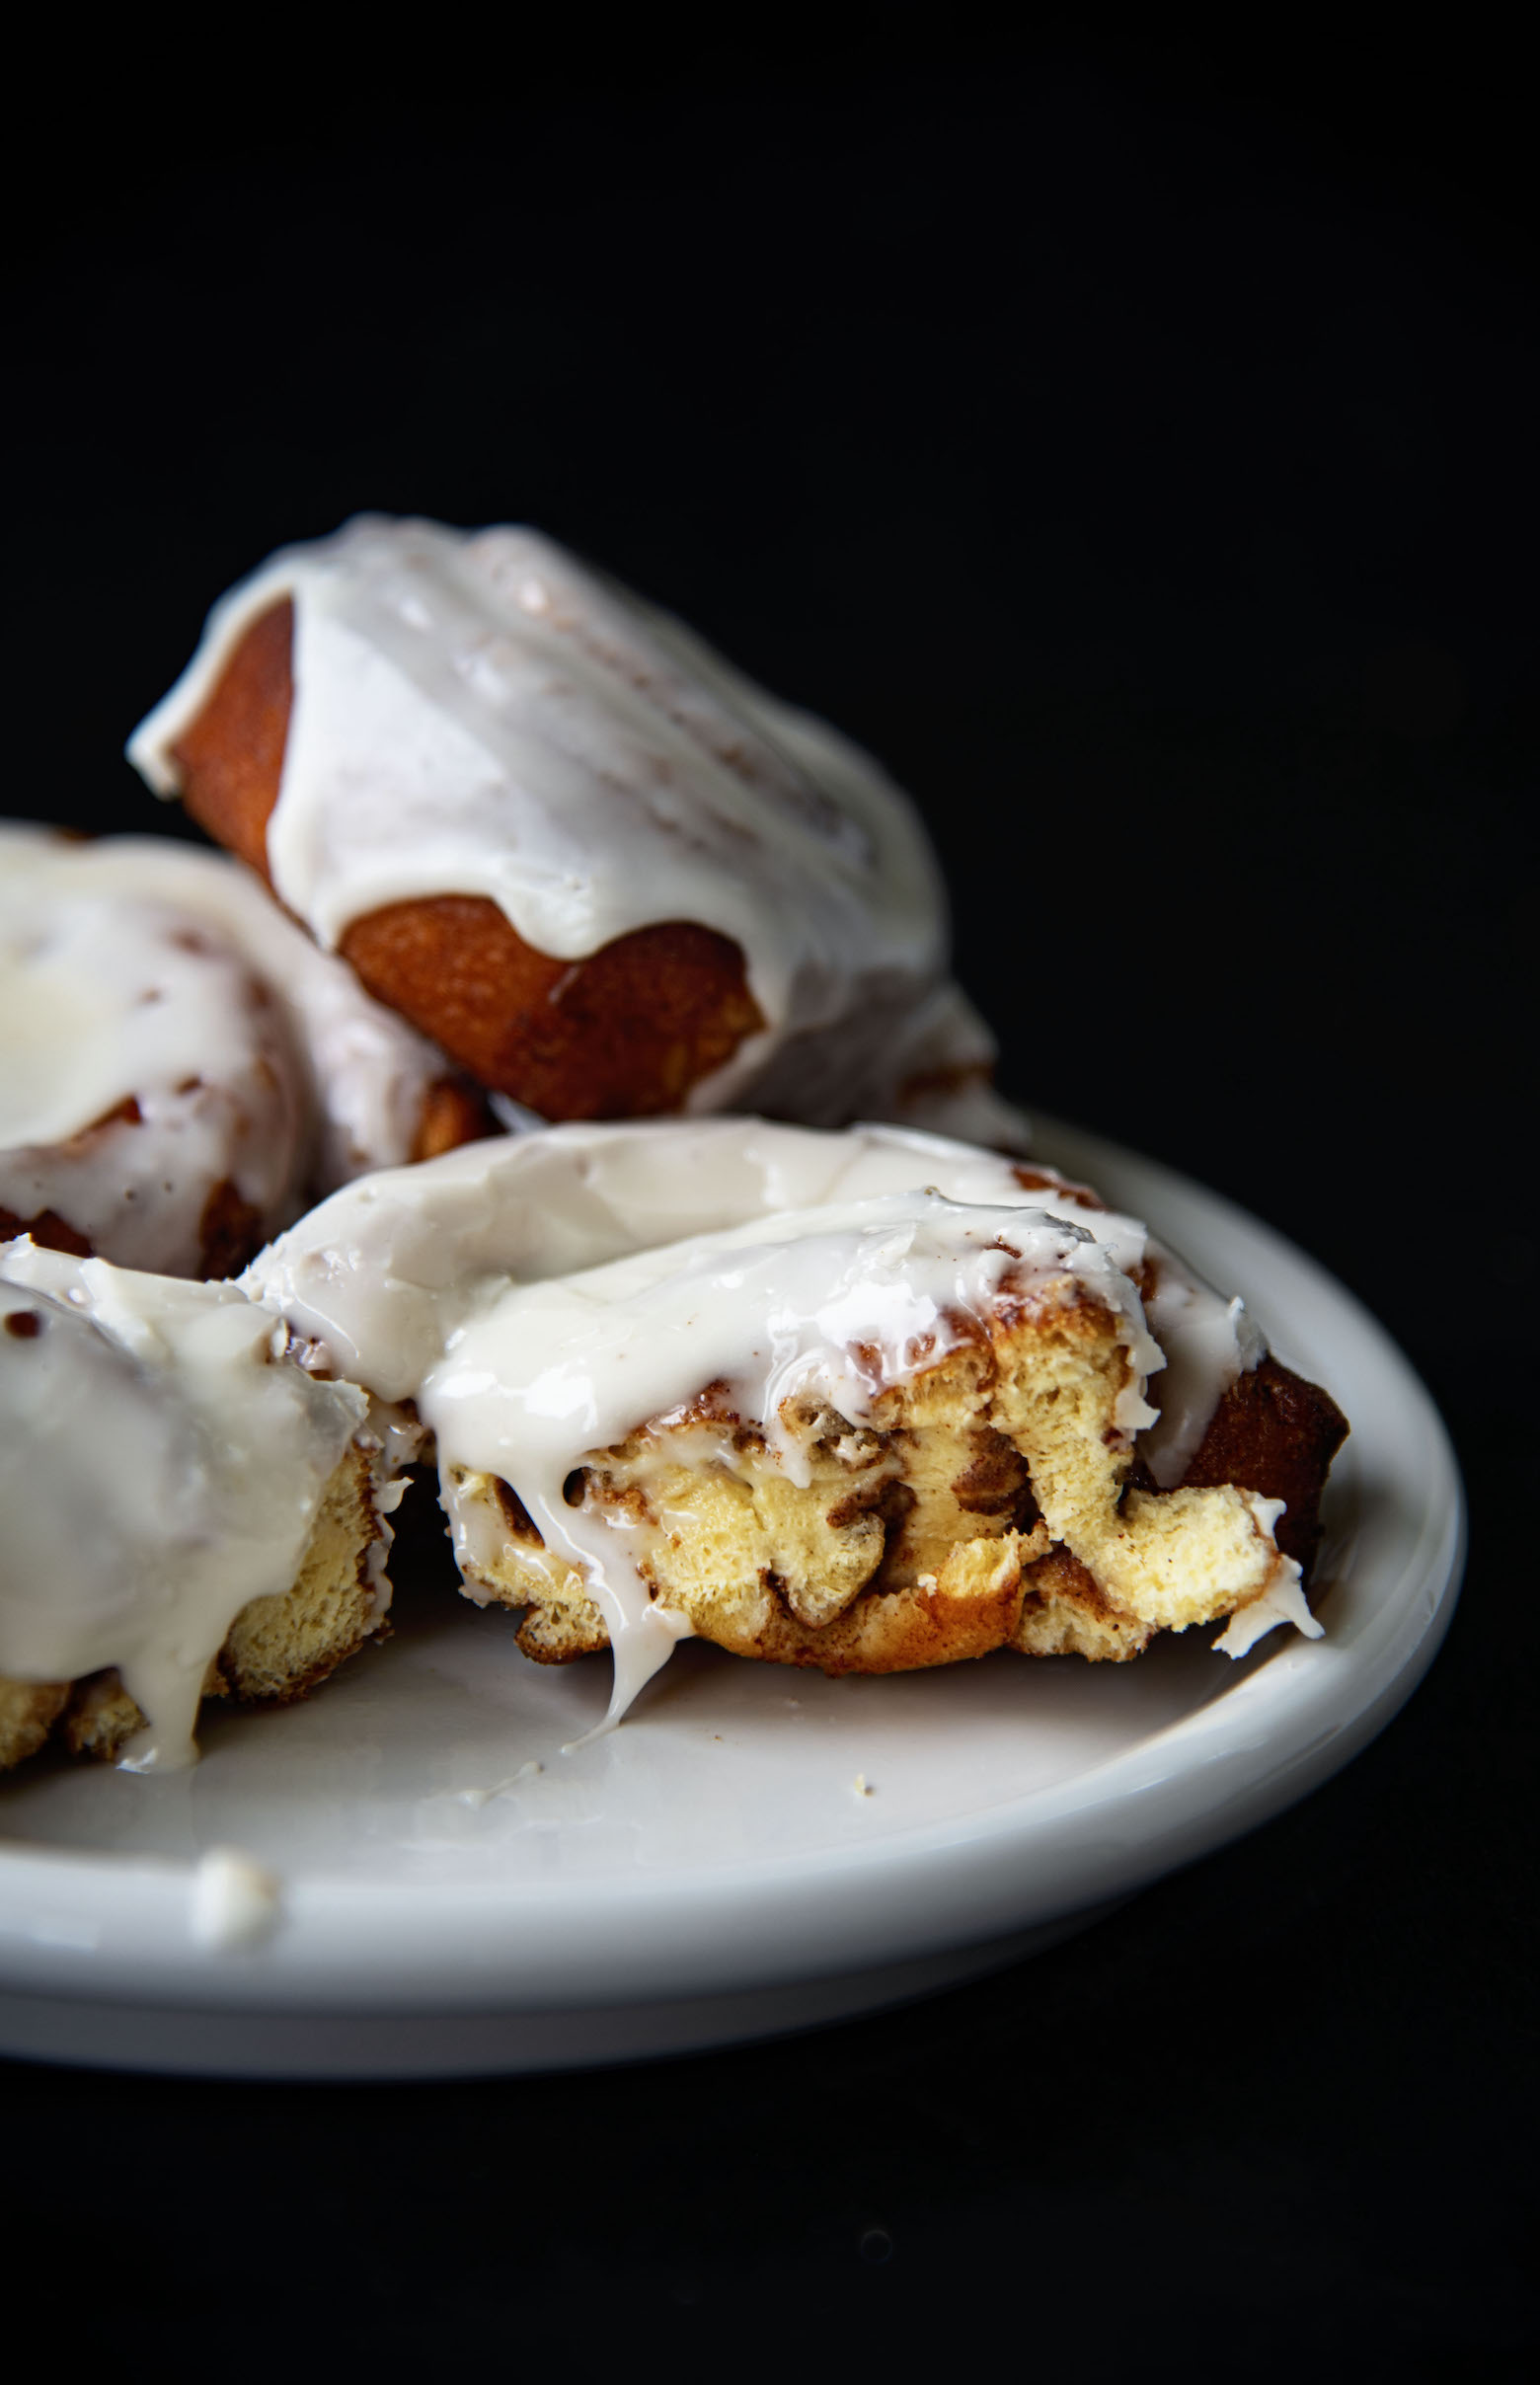 Deep Fried Cinnamon Rolls on a plate. One roll has a bite taken out of it.